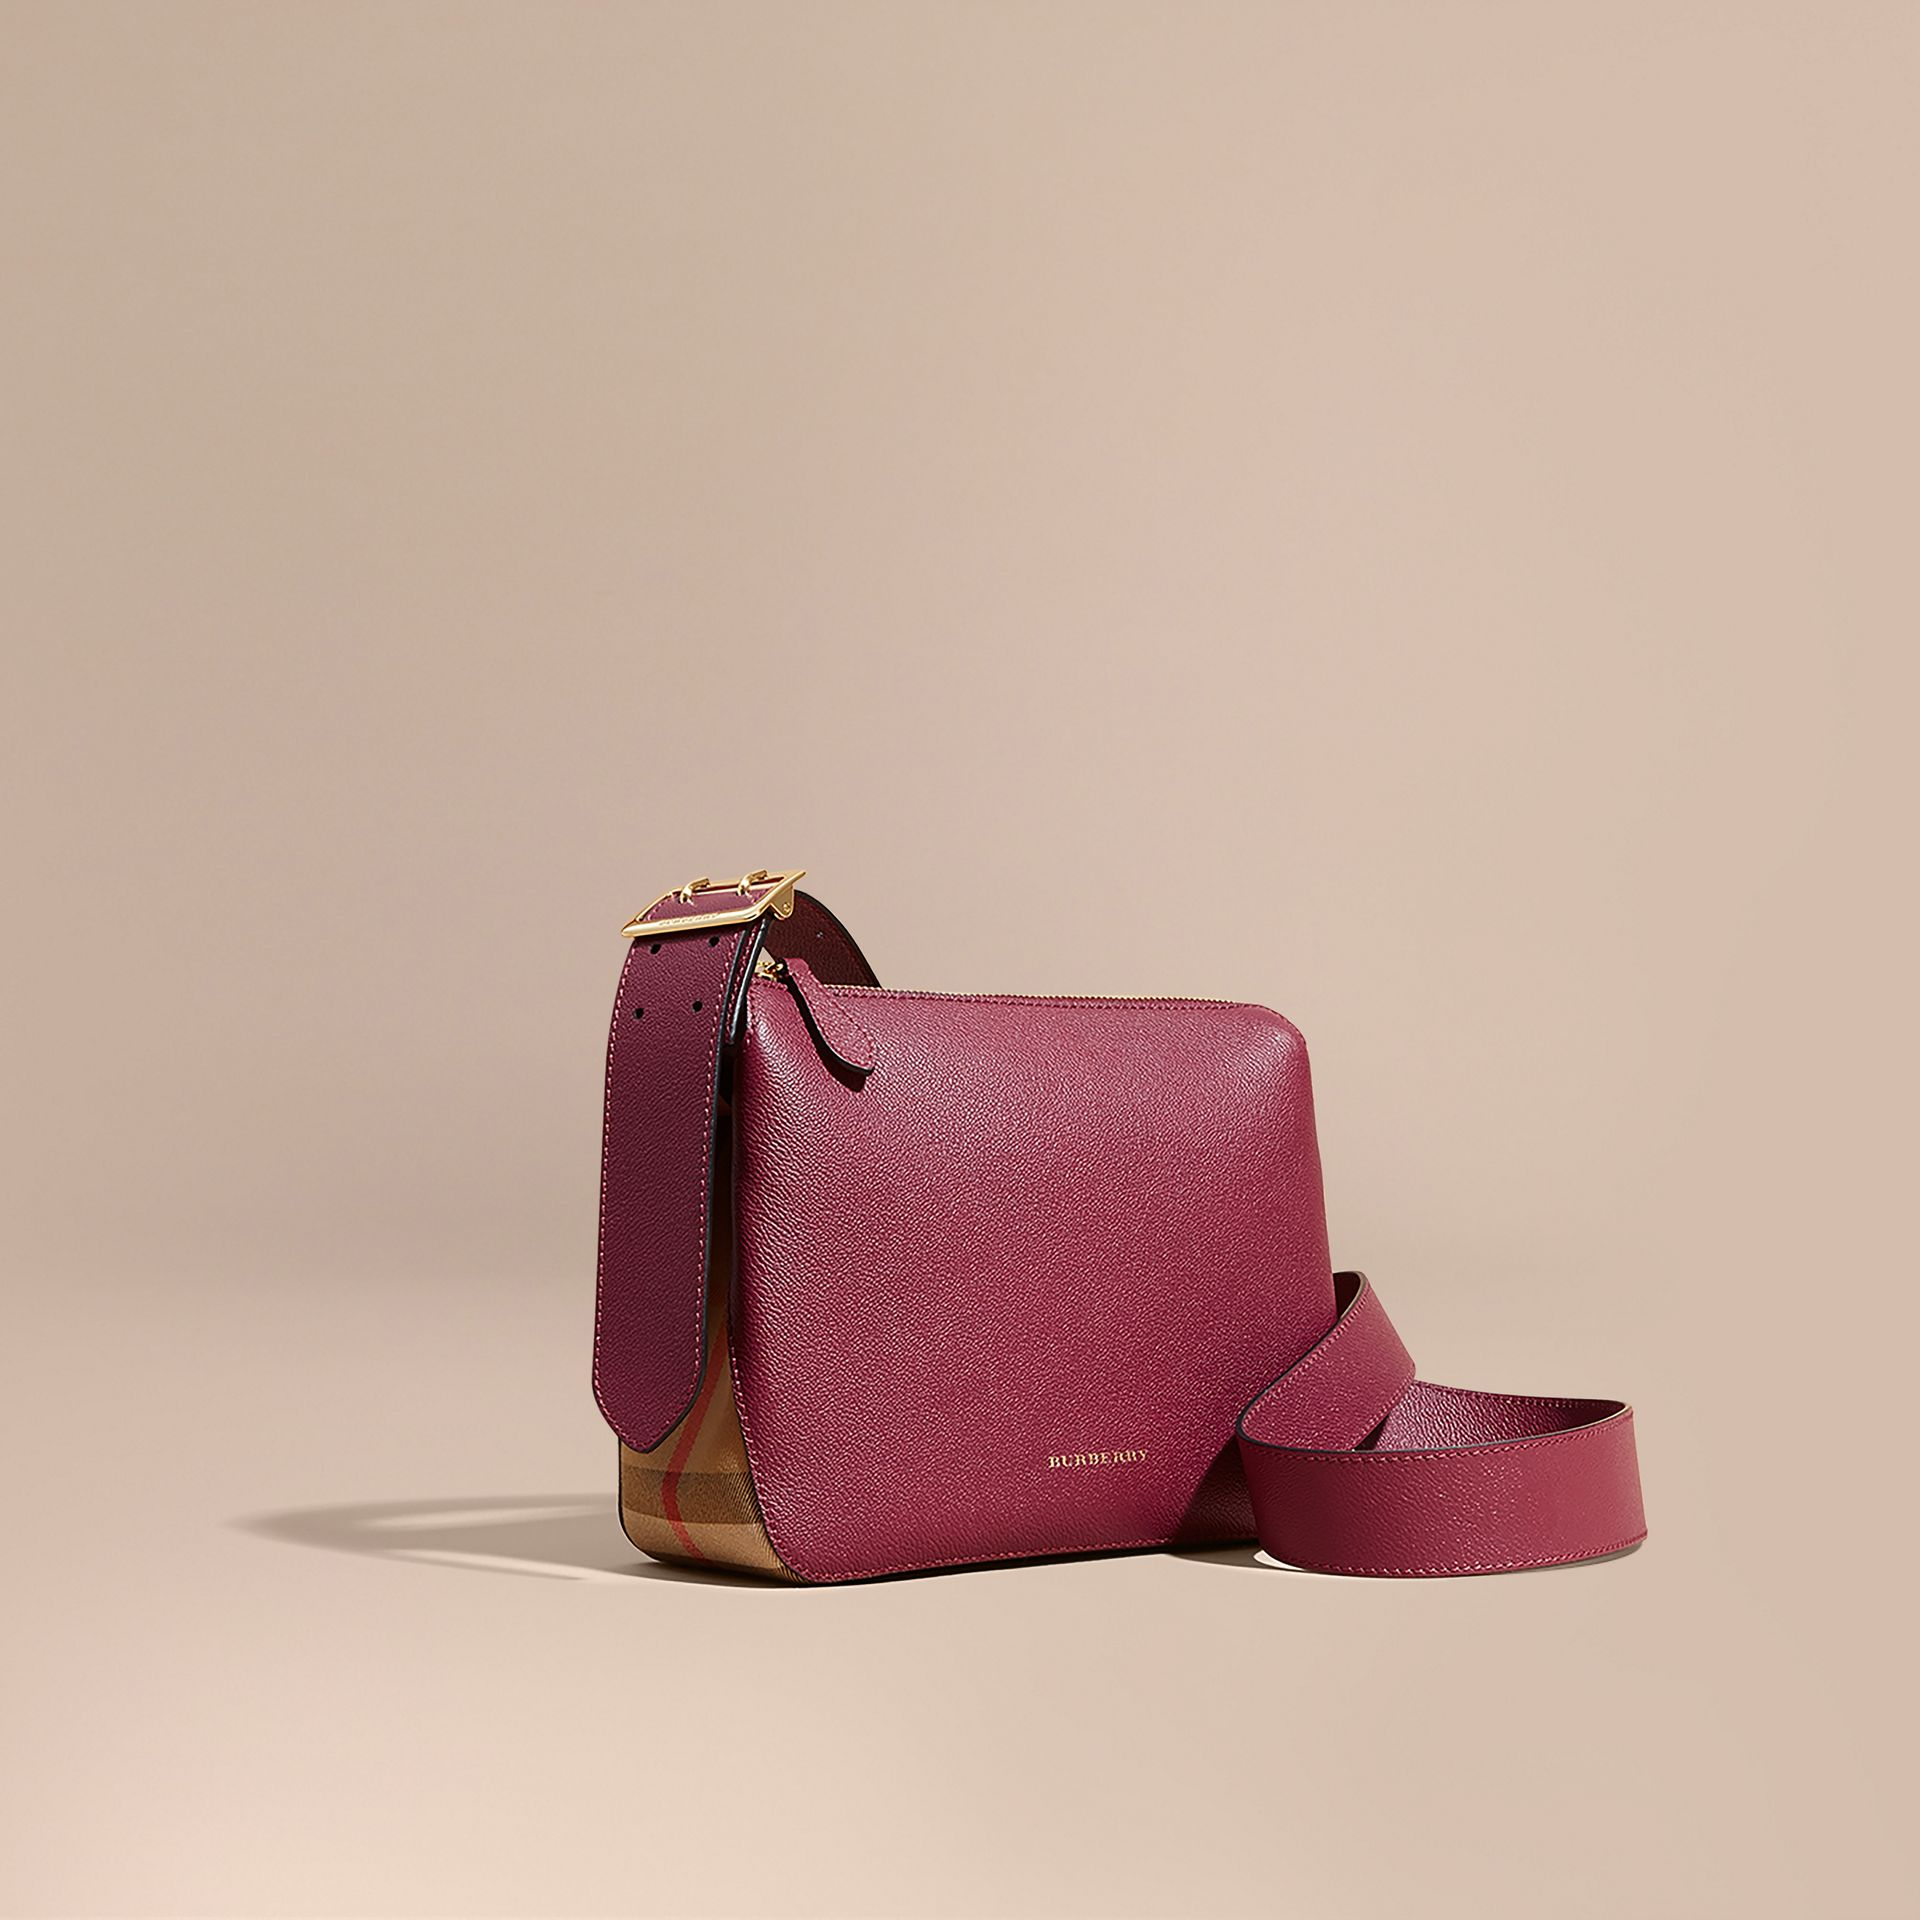 Buckle Detail Leather and House Check Crossbody Bag in Dark Plum - Women | Burberry - gallery image 0